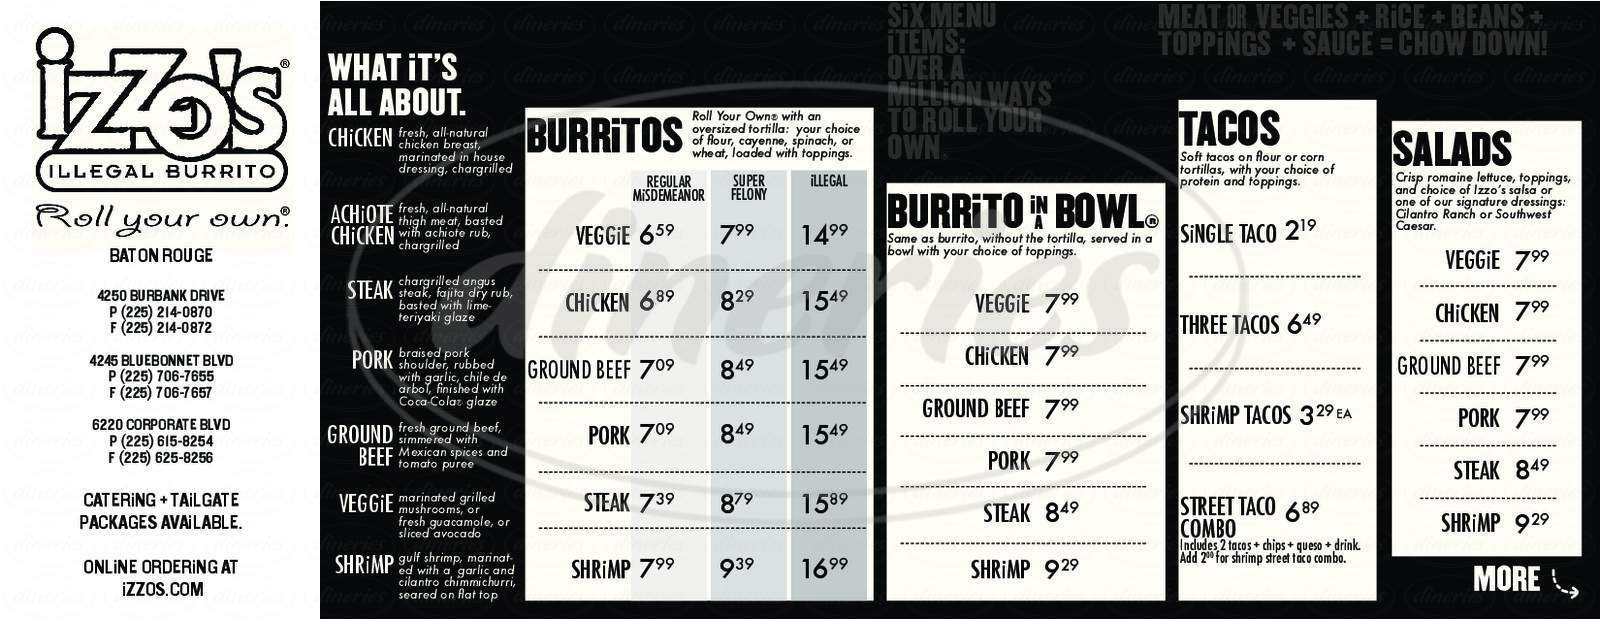 menu for Izzos Illegal Burrito Mall of Louisiana